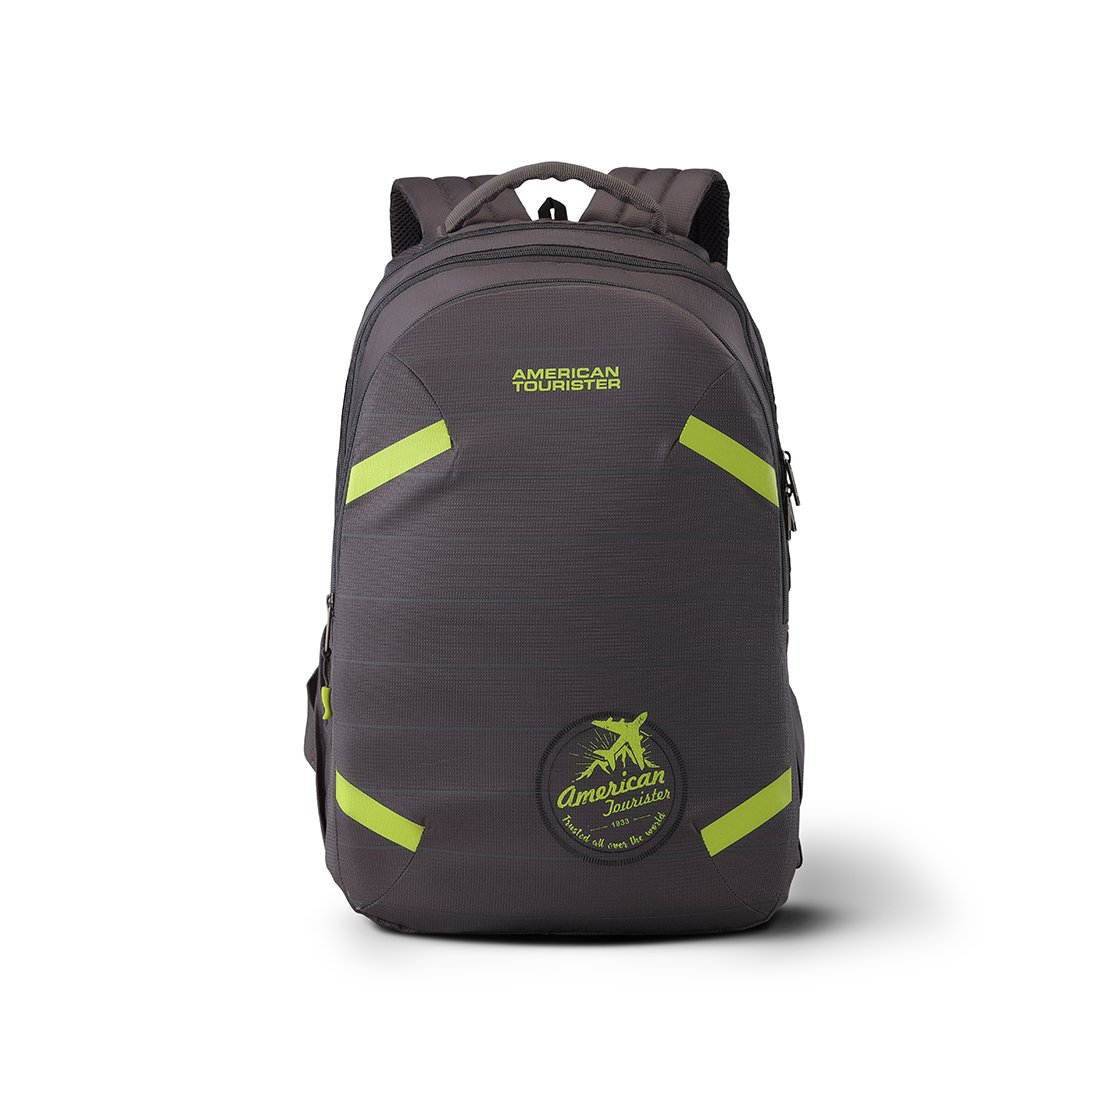 American Tourister Alto 31.5 Ltrs Grey Casual Backpack (Fh8 (0) 08 001)